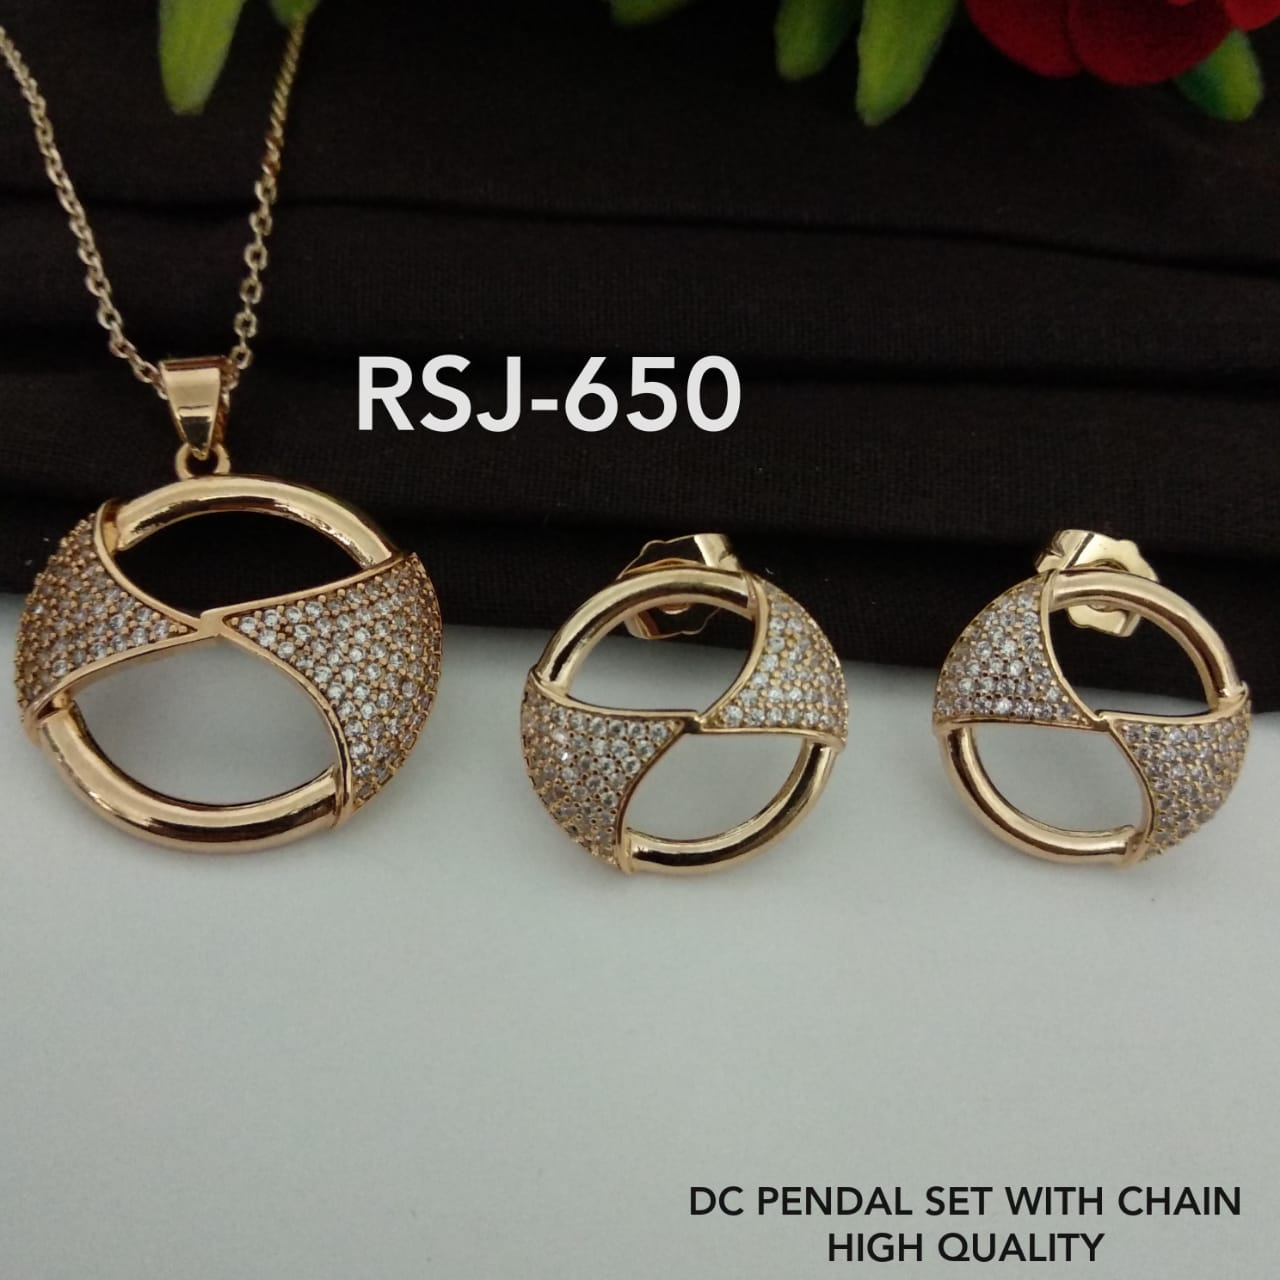 DC PENDAL SET WITH CHAIN RSJ650